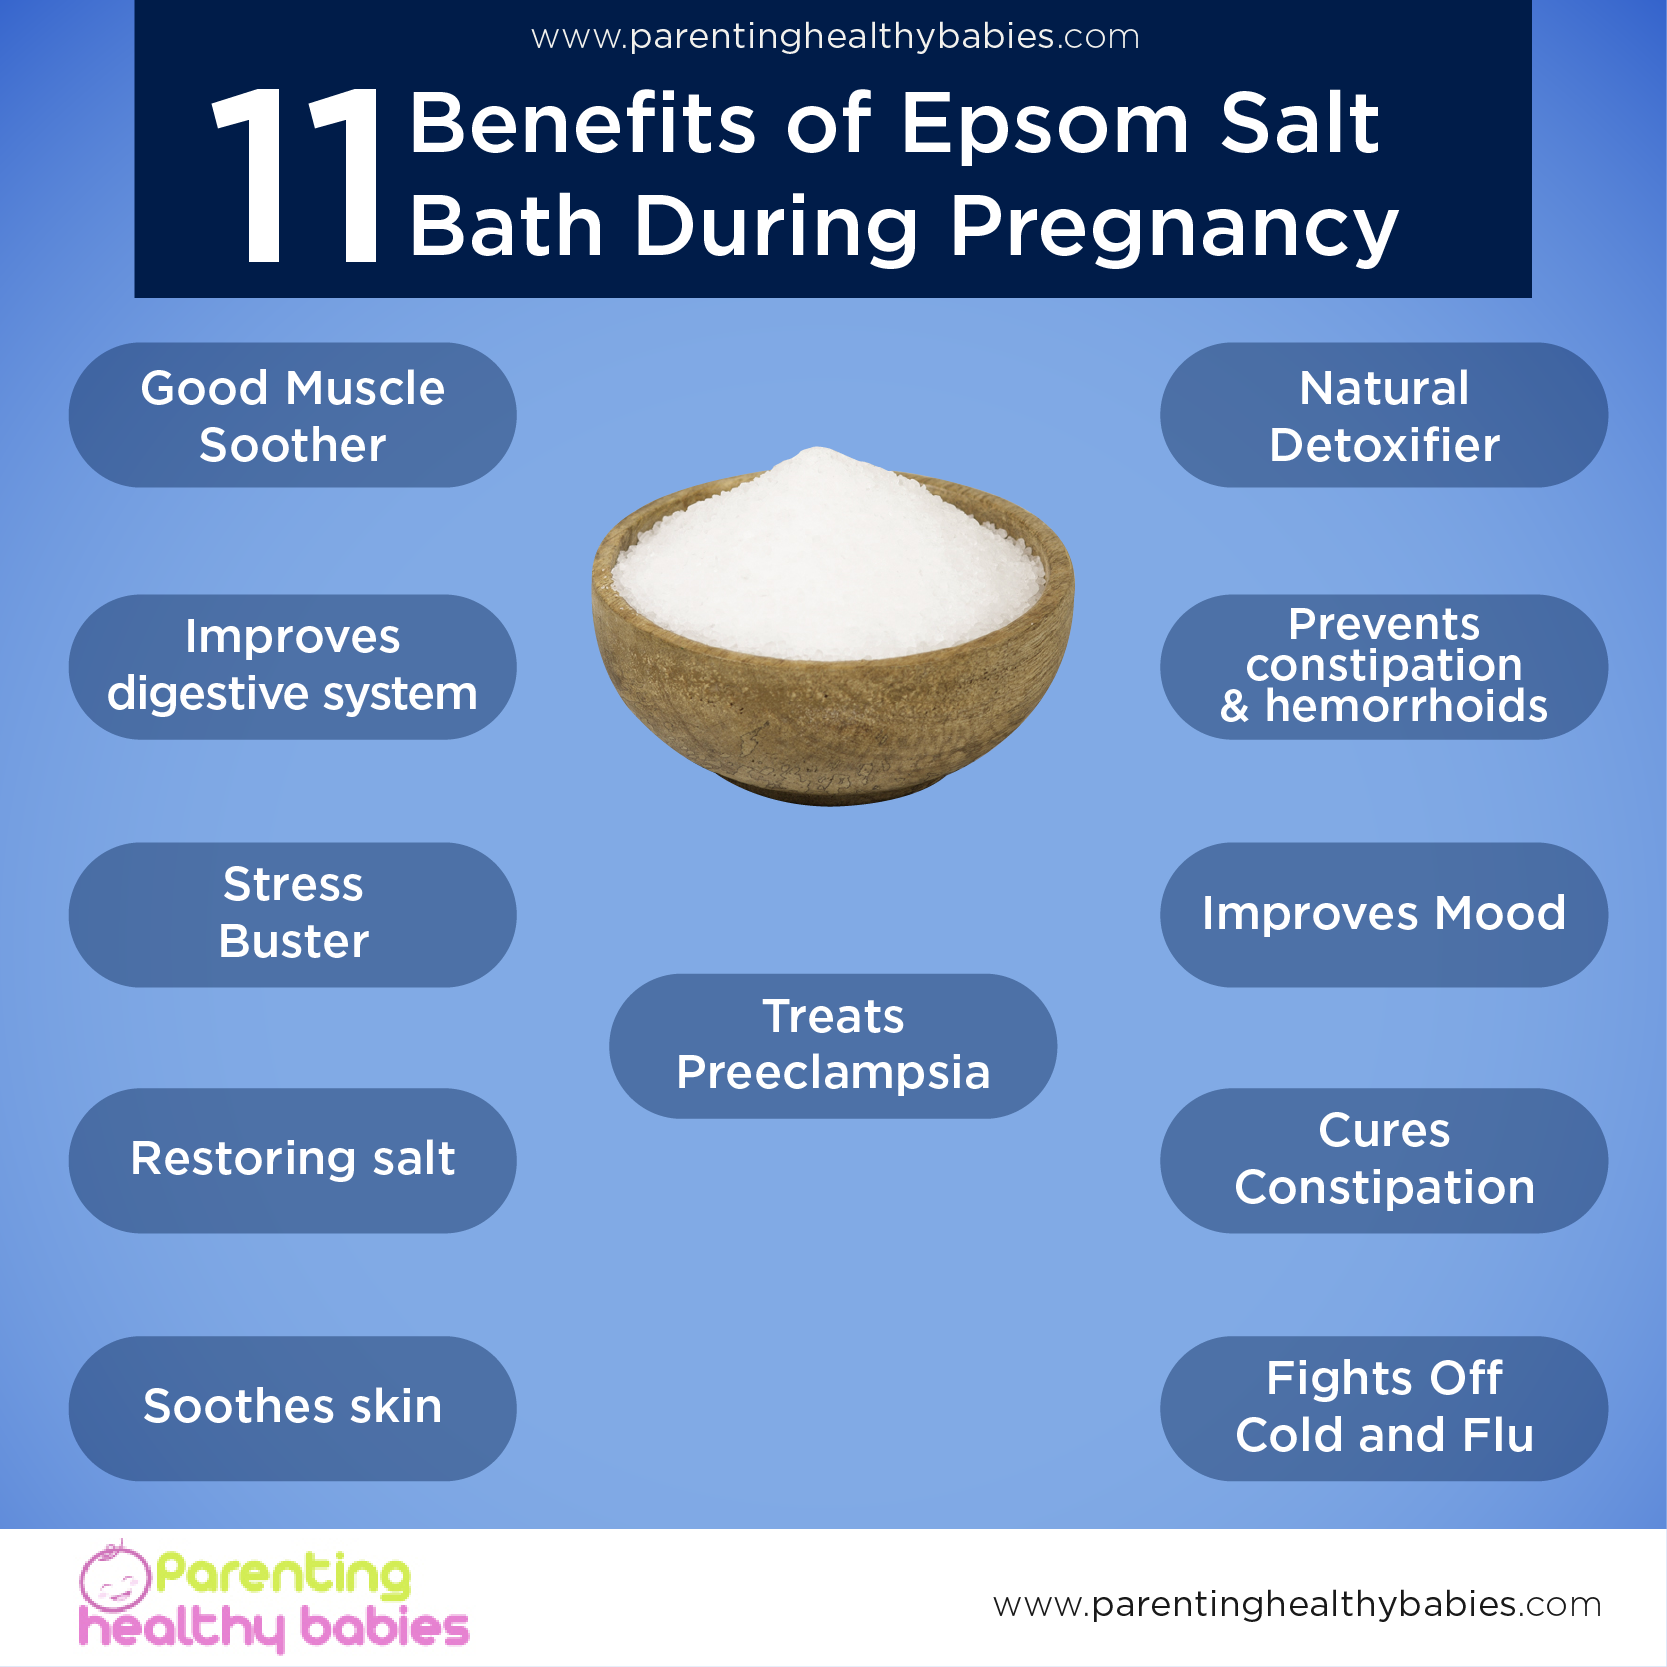 Methods To Expecting Understand Women Inability To Conceive And Also Means To Get Rid Of Epsom Salt Benefits Epsom Salt Bath Epsom Salt